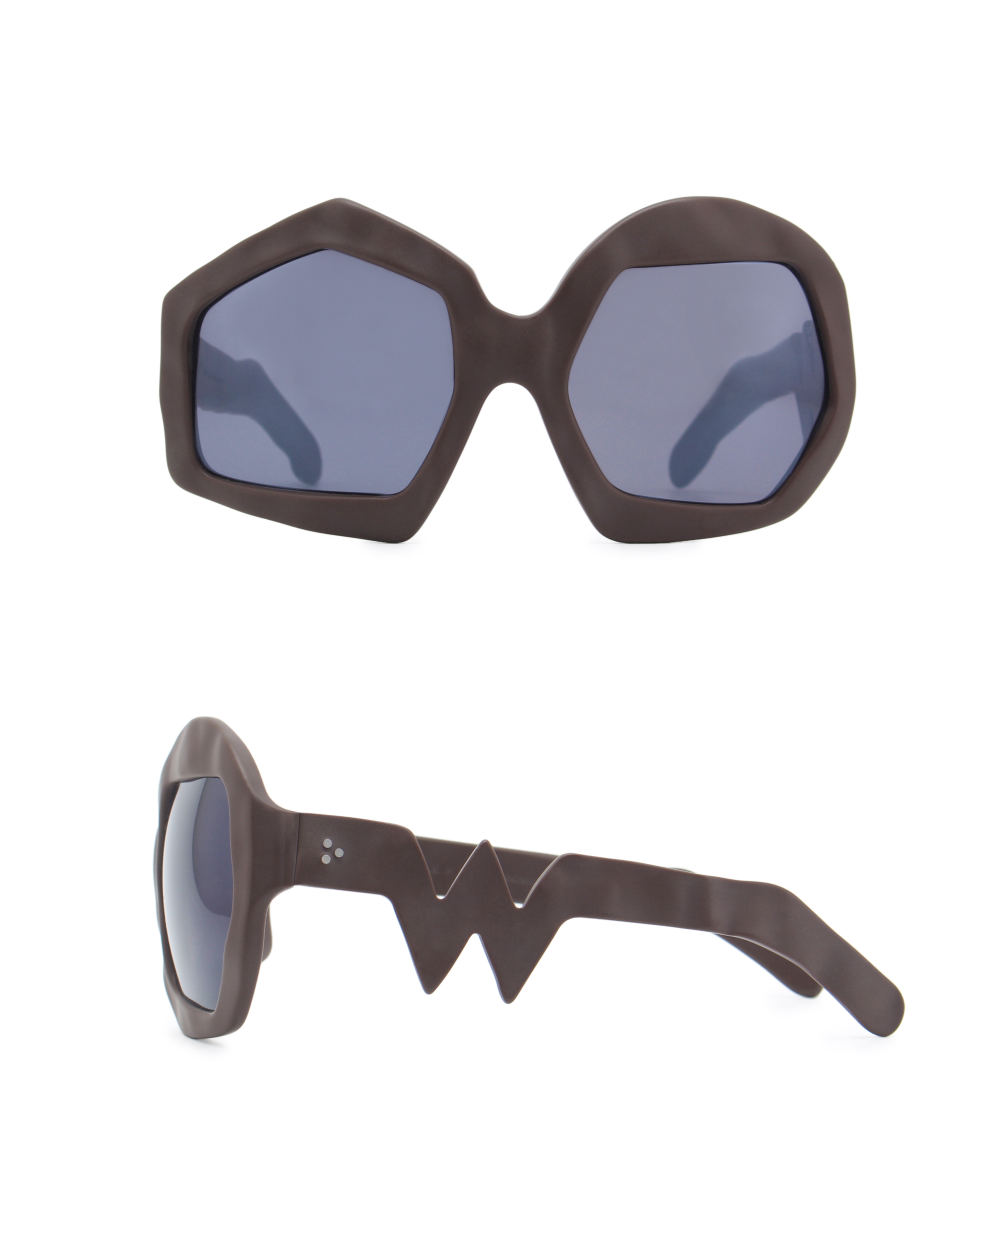 Thunder Sunglasses. Brown